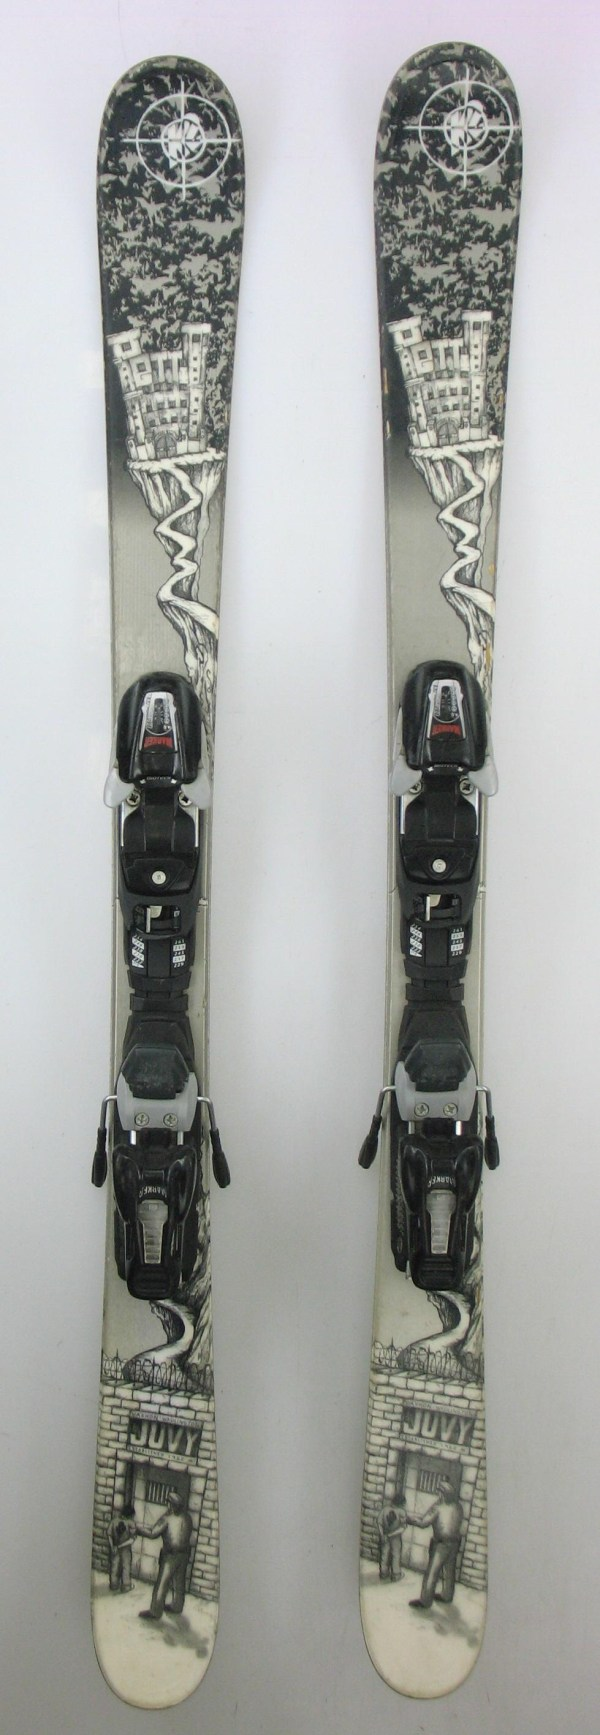 Used K2 Juvy Twin Tip Jr. Kids Snow Skis With Marker 450